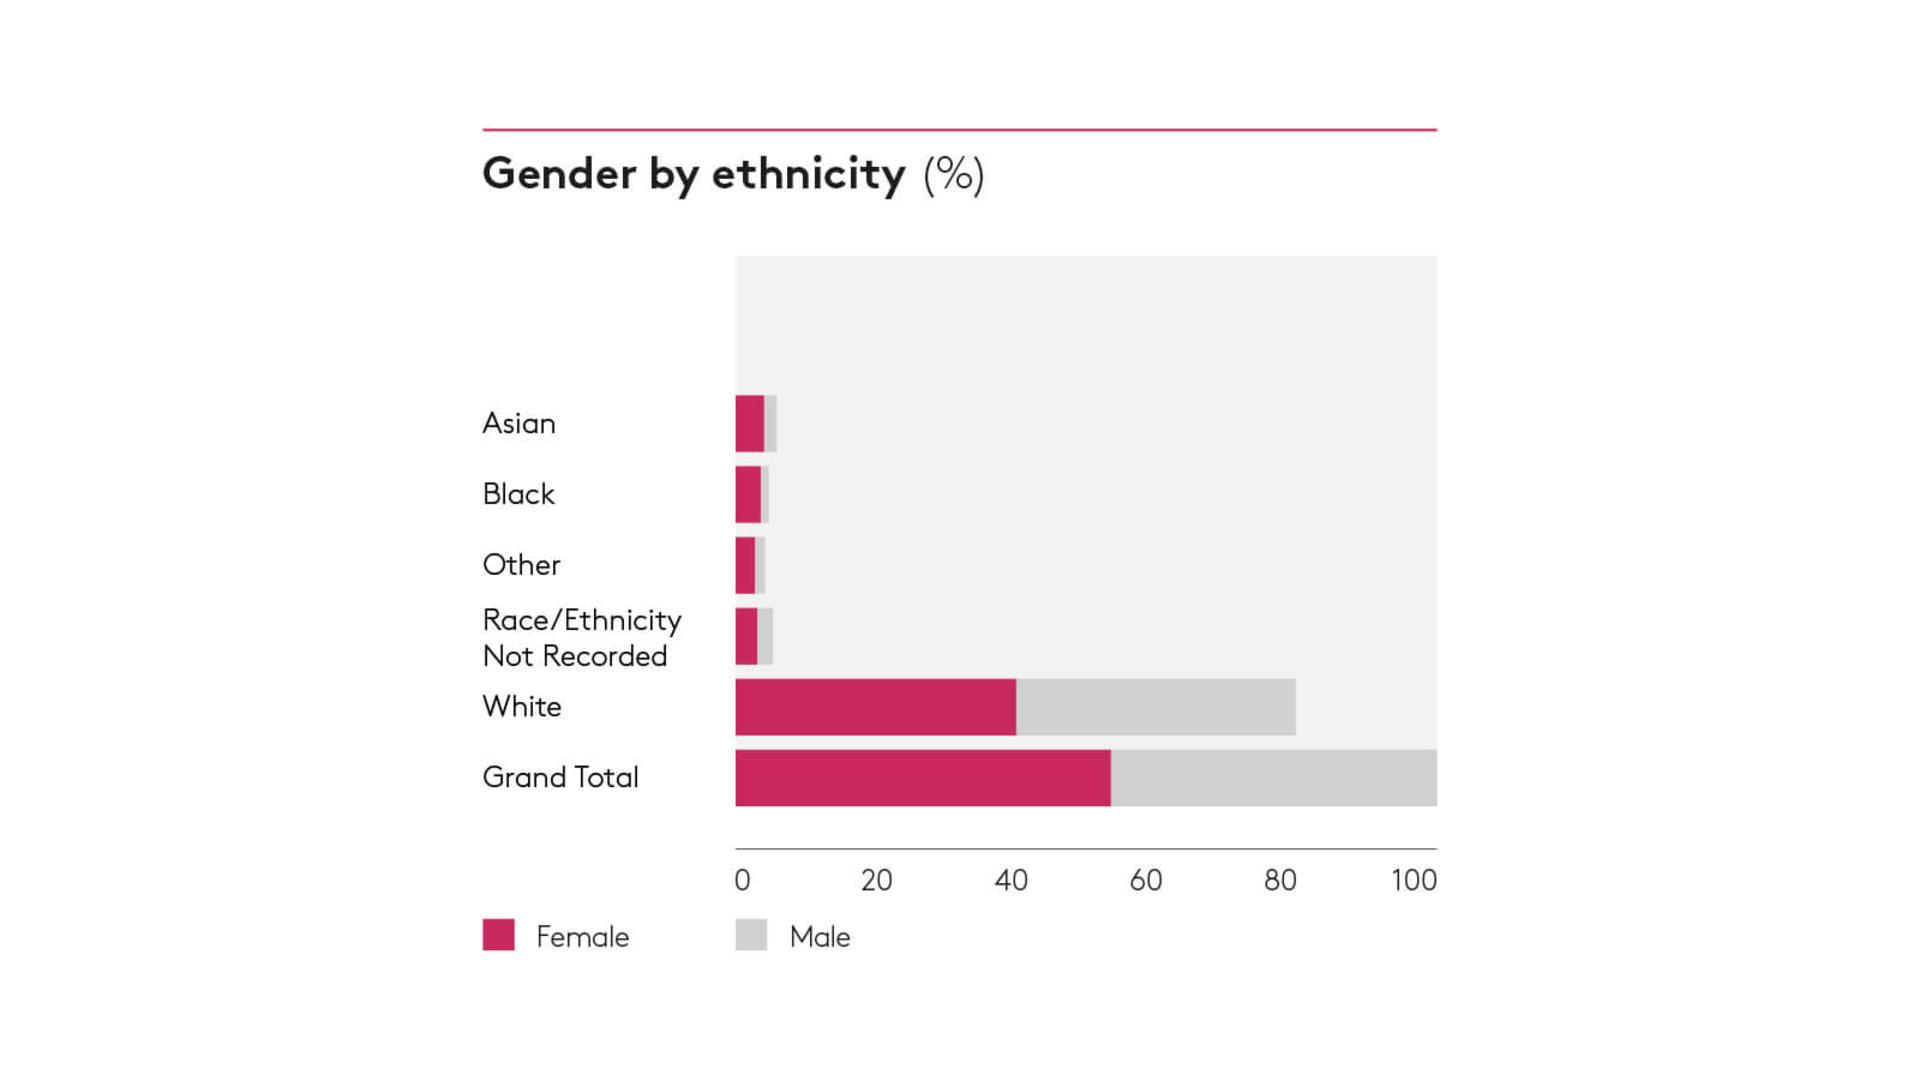 Gender by ethnicity 2018